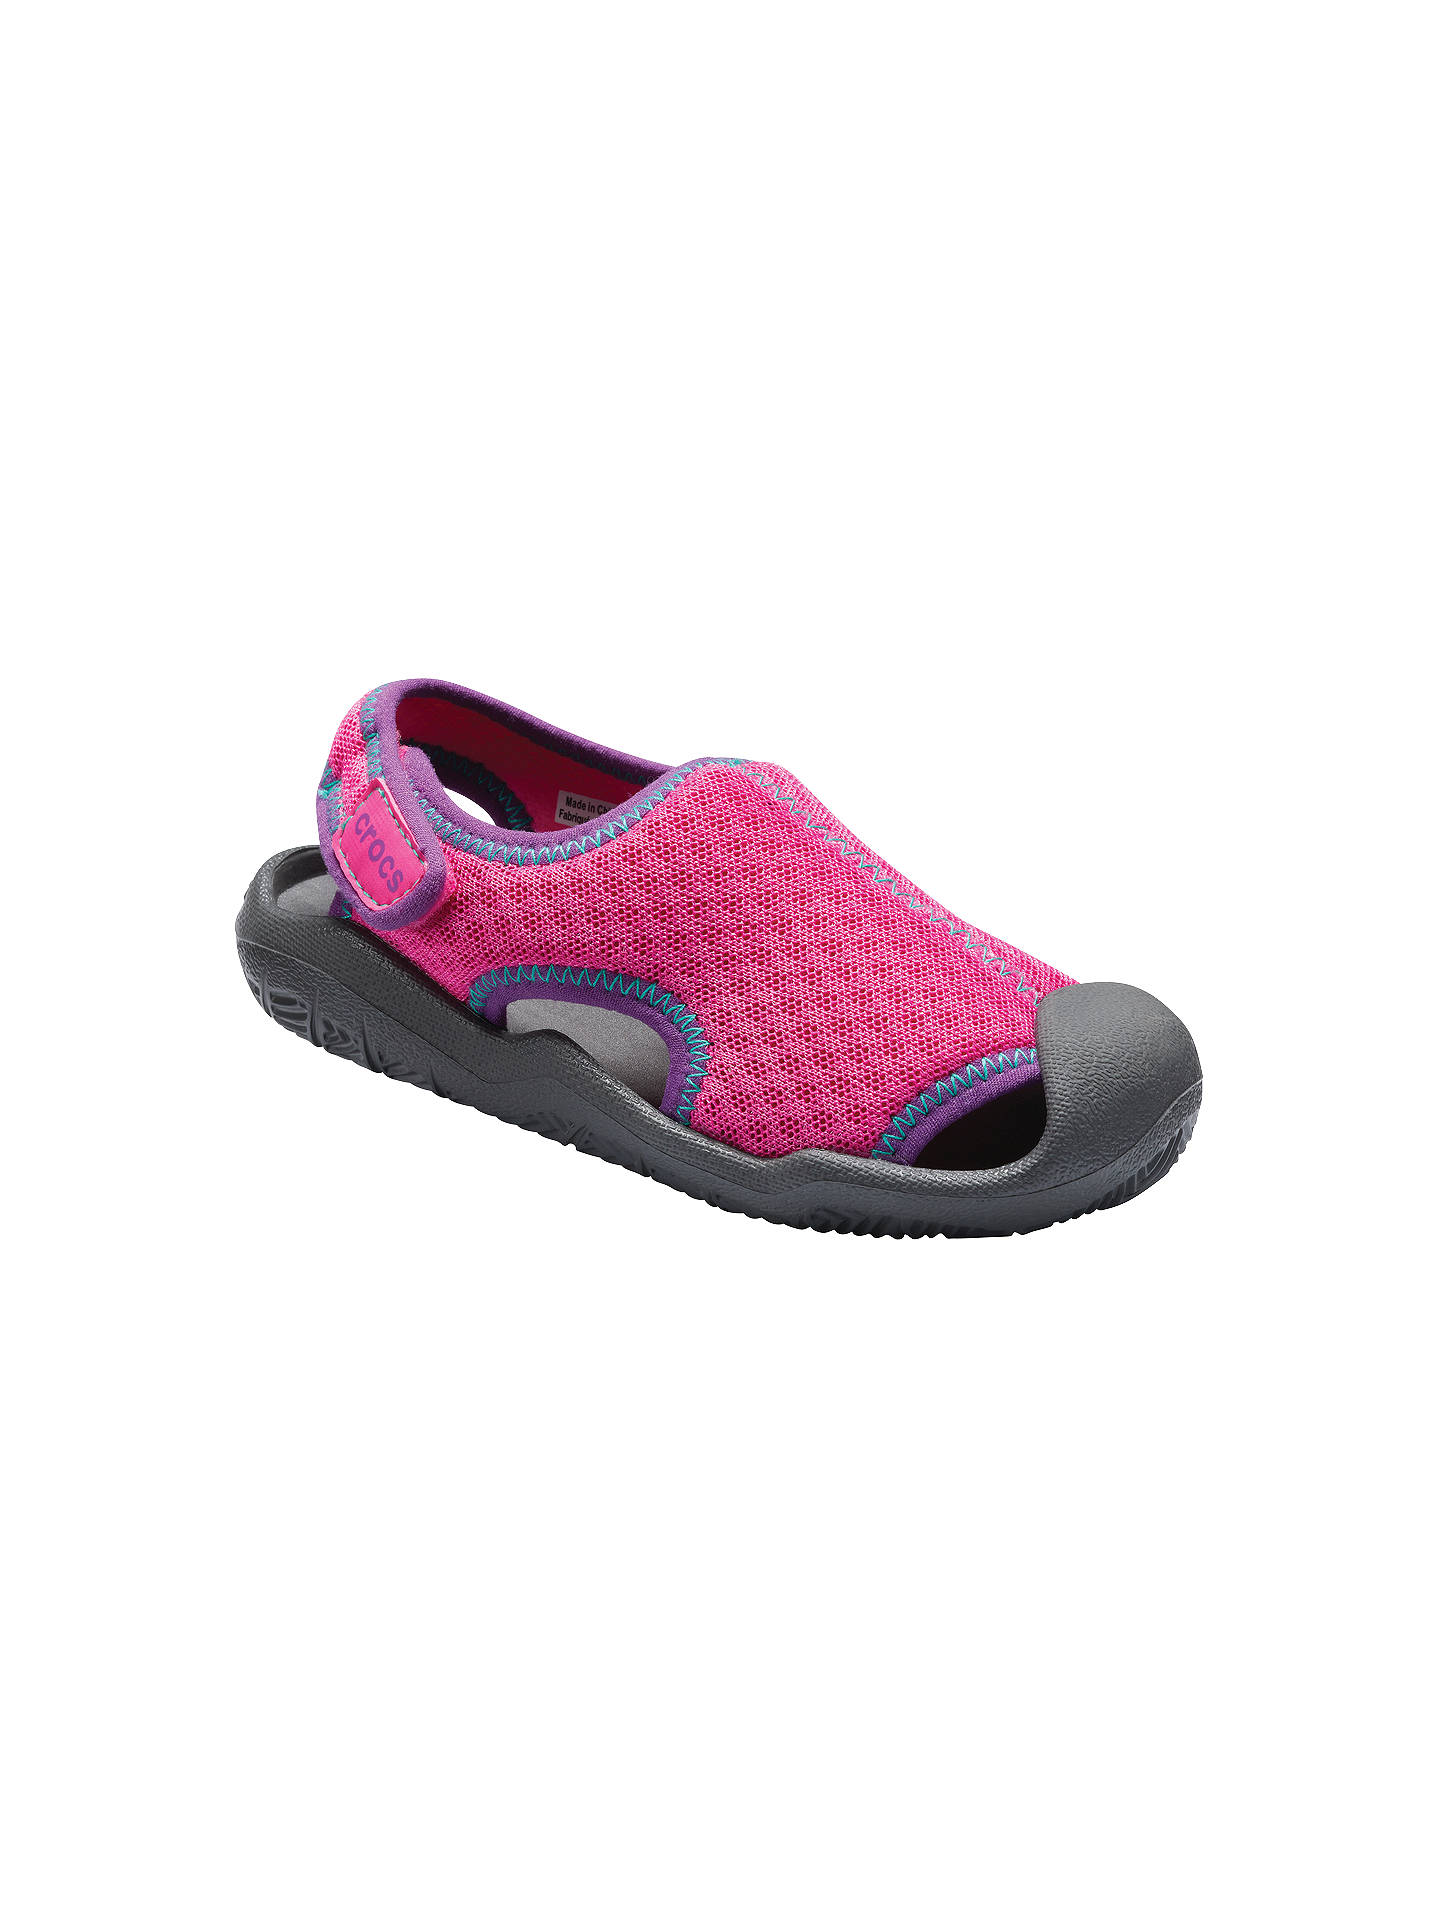 b018fe5b2e1f Crocs Children s Swiftwater Sandal at John Lewis   Partners